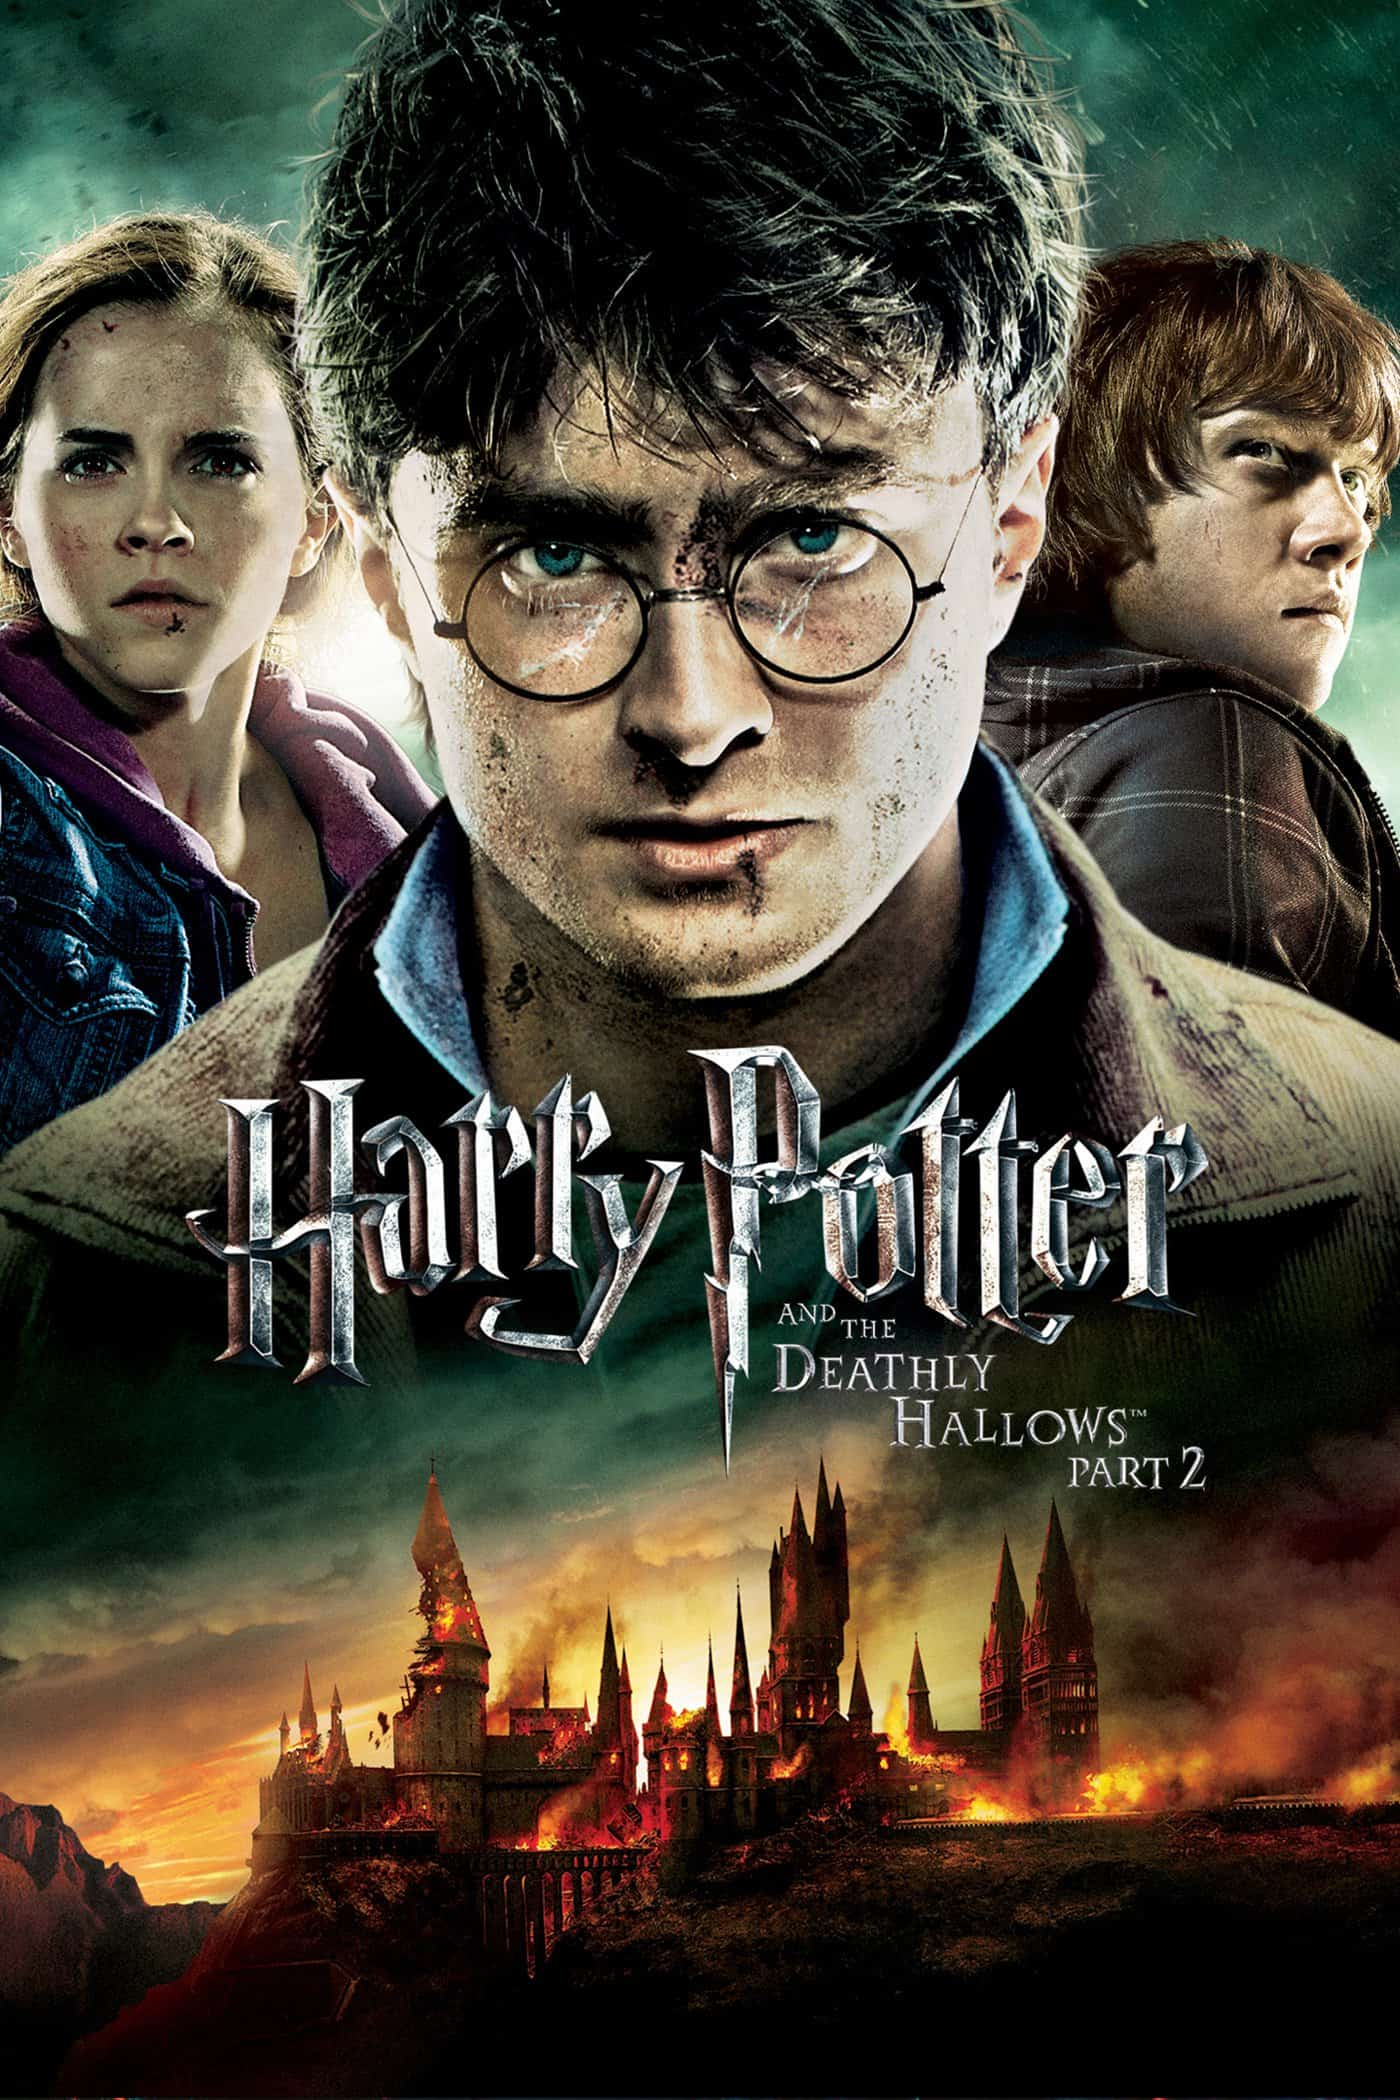 Harry Potter and the Deathly Hallows – Part 2, 2011